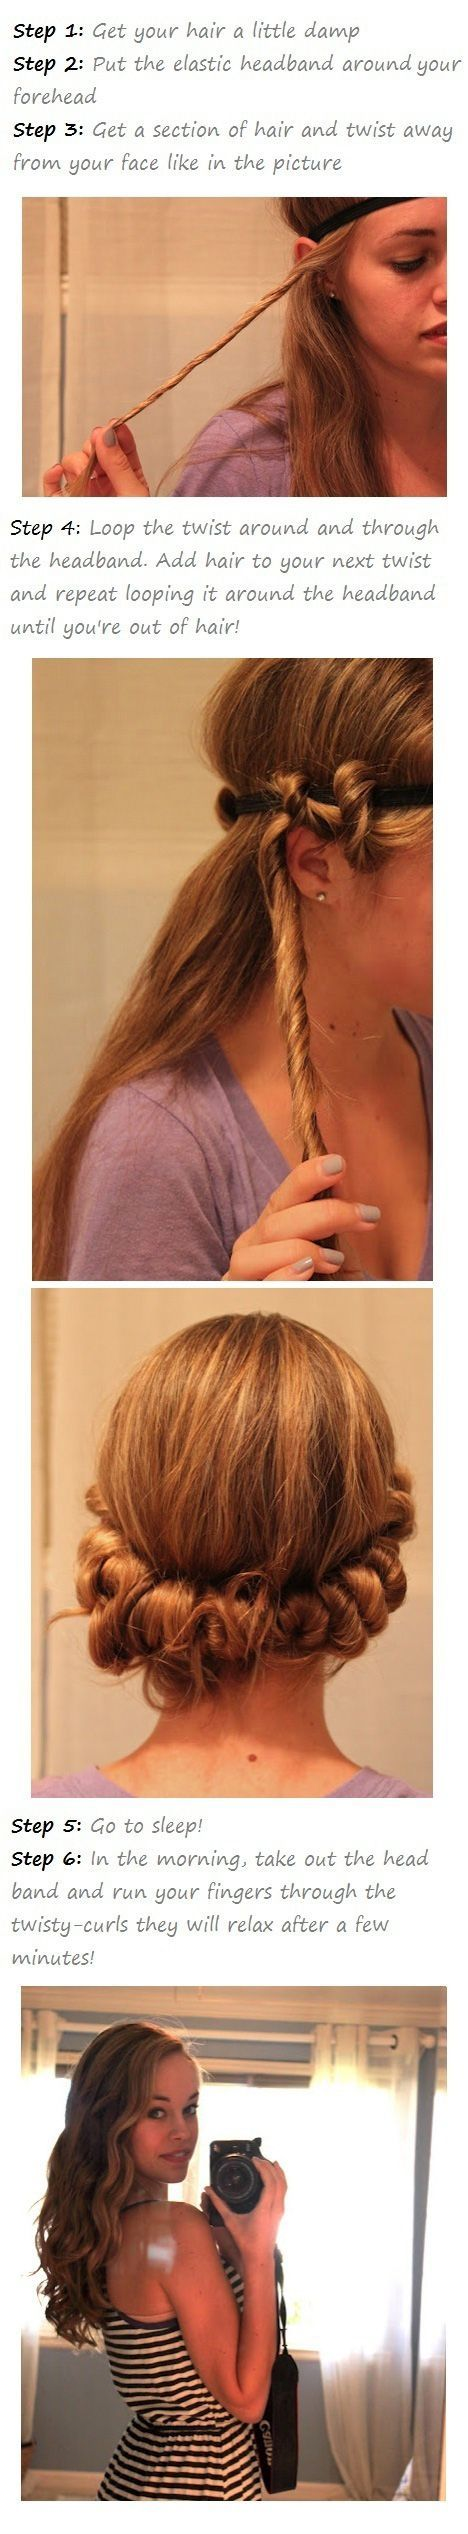 15 Easy No-Heat Hairstyles For Dirty Hair, Long Or Short   Gurl.com